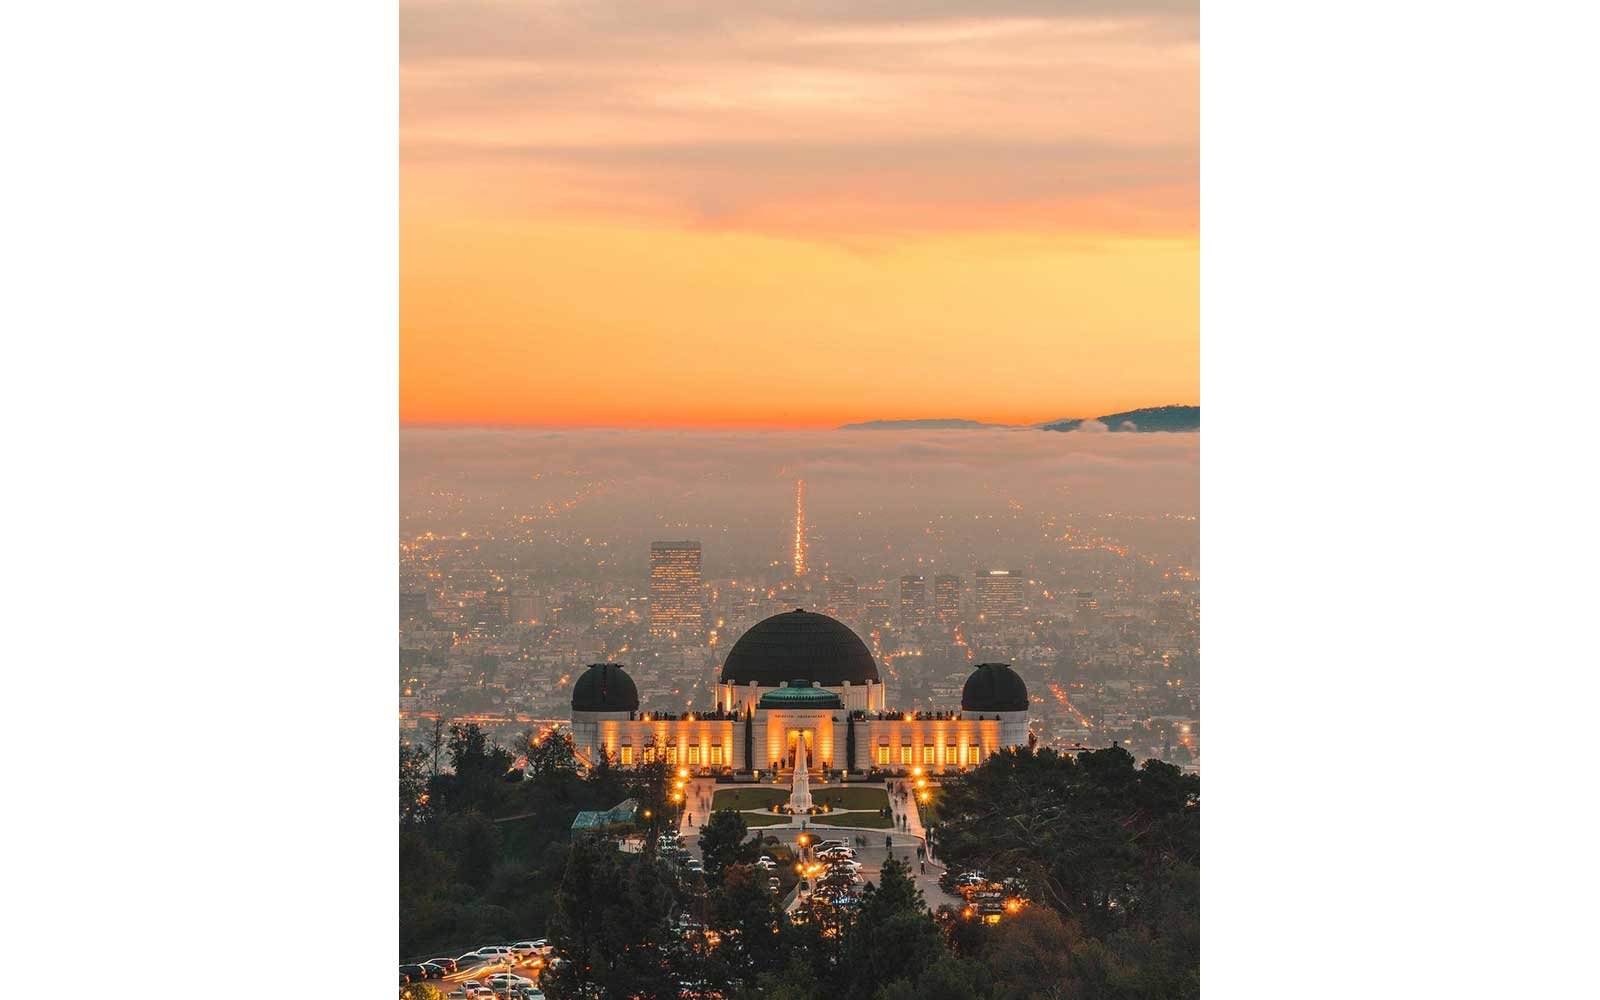 Sunset at Los Angeles' Griffith Observatory